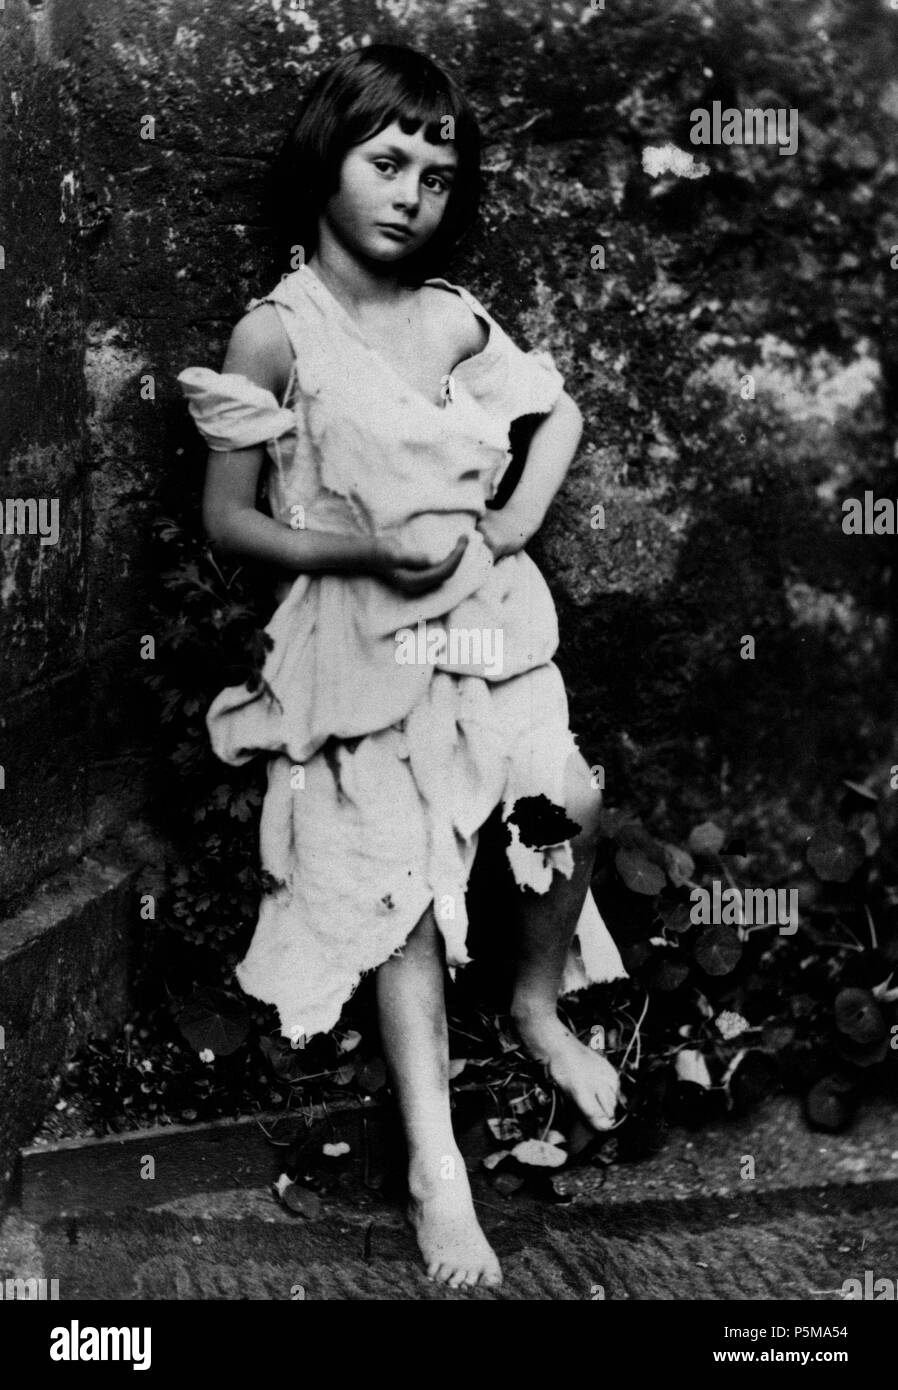 N/A. English: Alice Liddell as a beggar girl. Photo by Lewis Carroll. High resolution: This was first published in Carroll's biography by his nephew: Collingwood, Stuart Dodgson (1898) The Life and Letters of Lewis Carroll, London: T. Fisher Unwin, pp.p. 80 Retrieved on 22 December 2010. . 1858.   Lewis Carroll (1832–1898)   Alternative names Charles Lutwidge Dodgson  Description British-English writer, mathematician and photographer  Date of birth/death 27 January 1832 14 January 1898  Location of birth/death Daresbury, Cheshire, England Guildford, Surrey, England  Work period 1854 to 1 - Stock Image